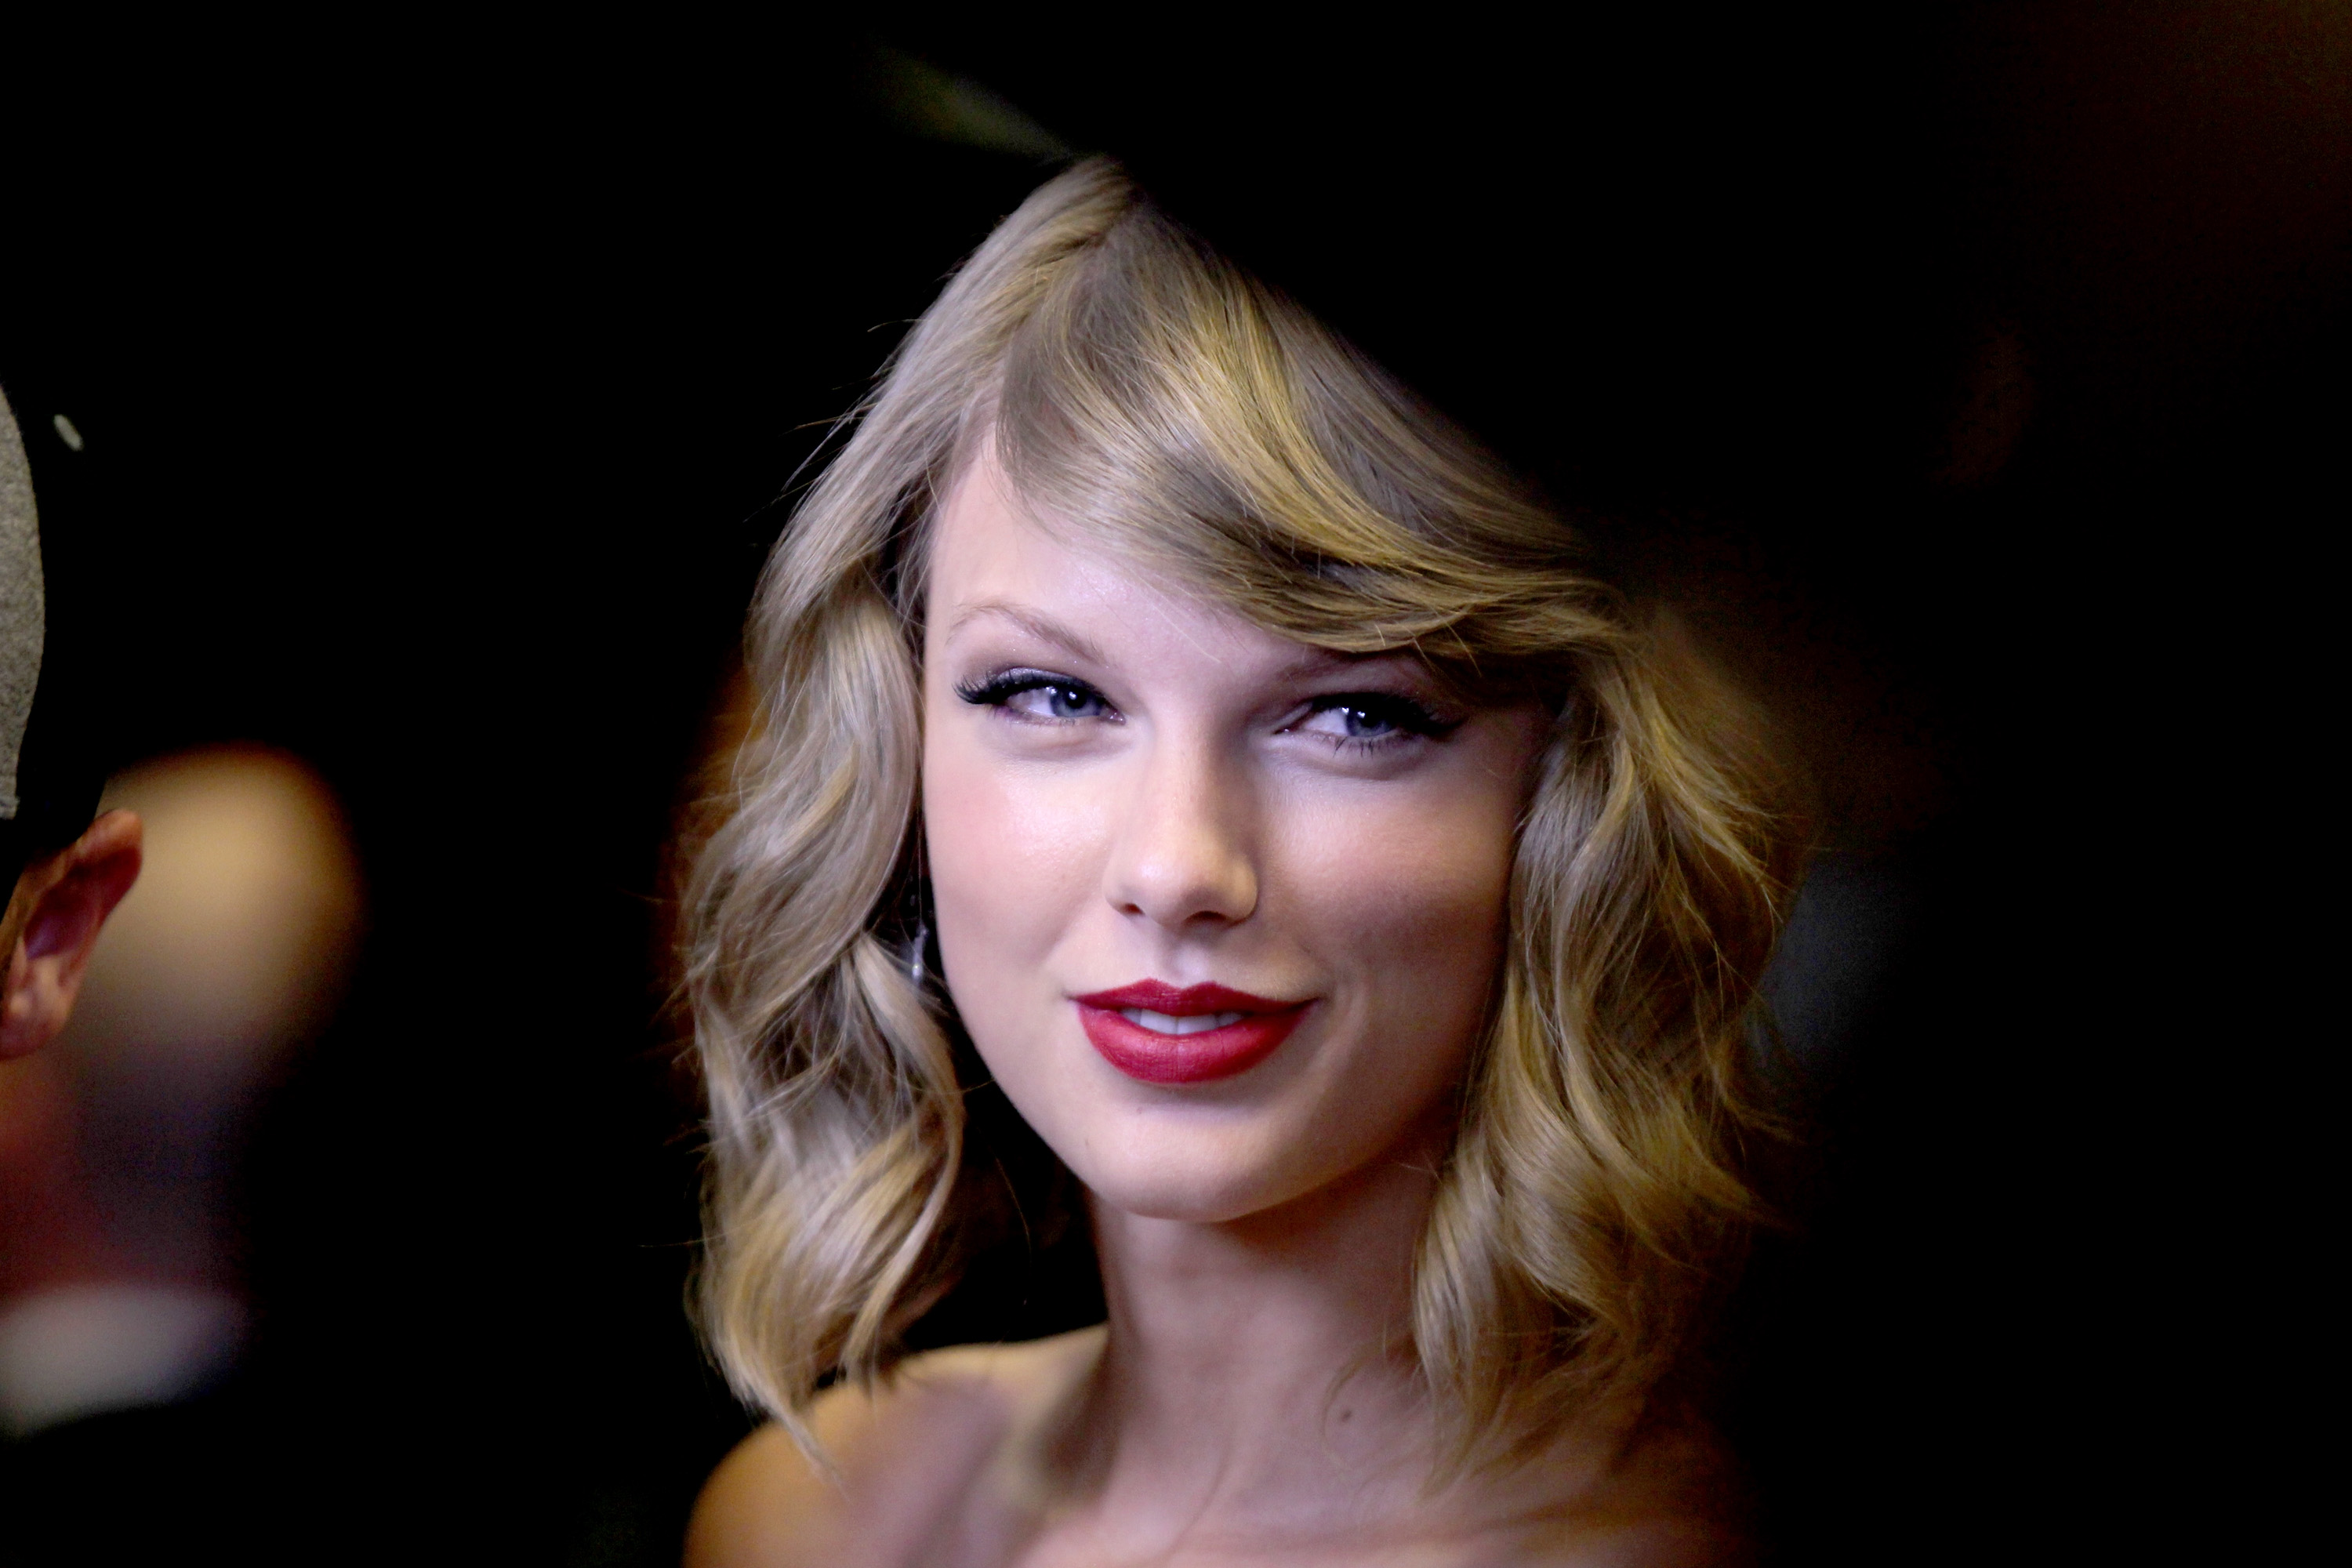 LAS VEGAS, NV - SEPTEMBER 19:  Recording artist Taylor Swift attends the 2014 iHeartRadio Music Festival at the MGM Grand Garden on September 19, 2014 in Las Vegas, Nevada.  (Photo by Isaac Brekken/Getty Images for iHeartMedia)